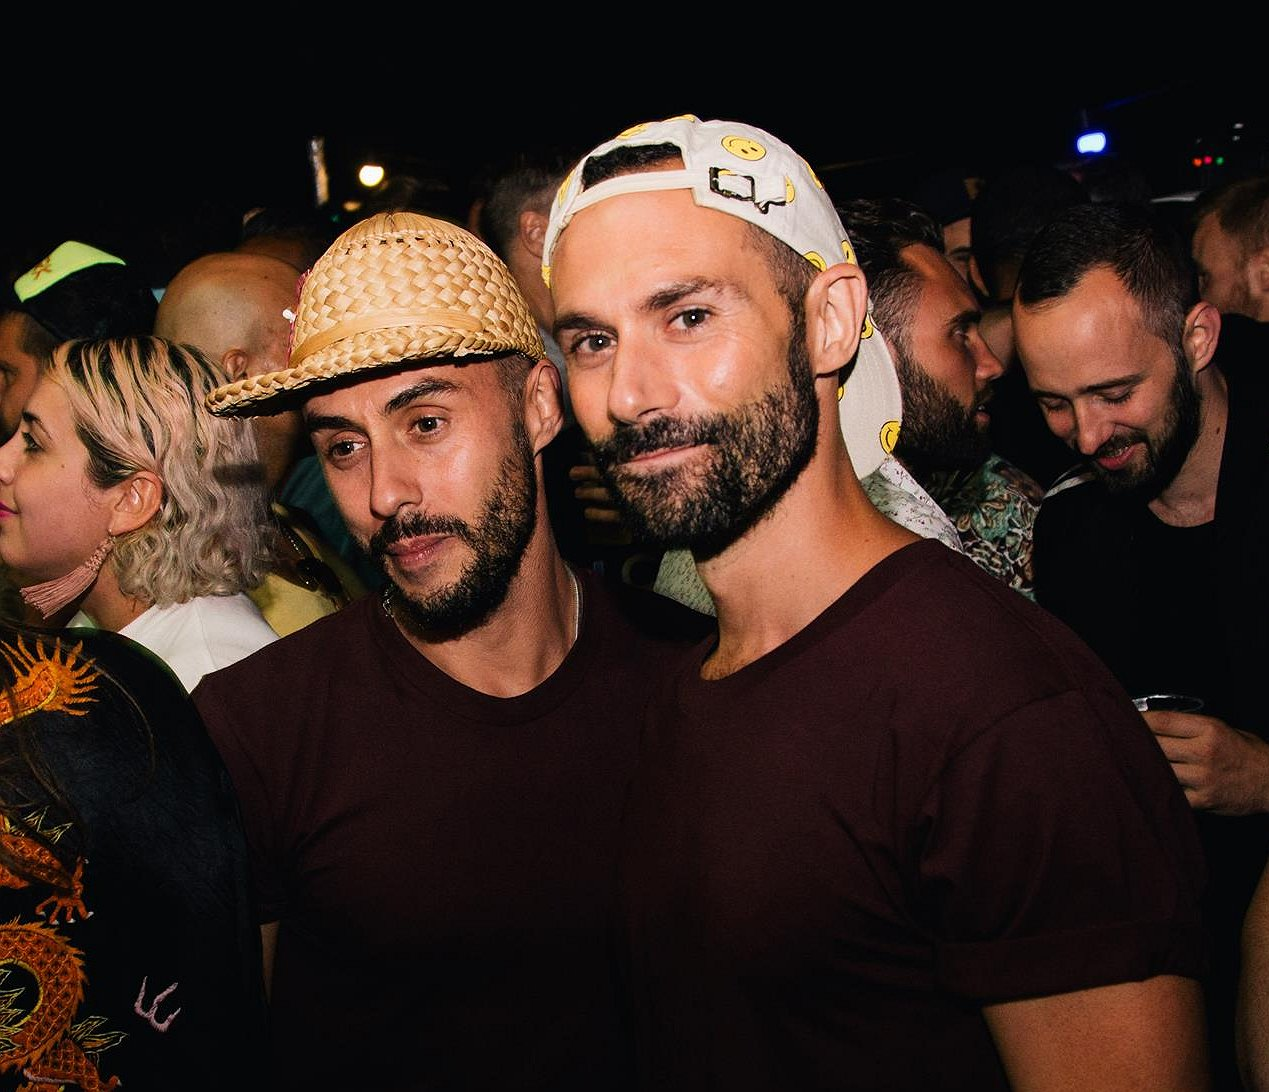 Thank Gay It's Friday | De 5 leukste events van dit weekend